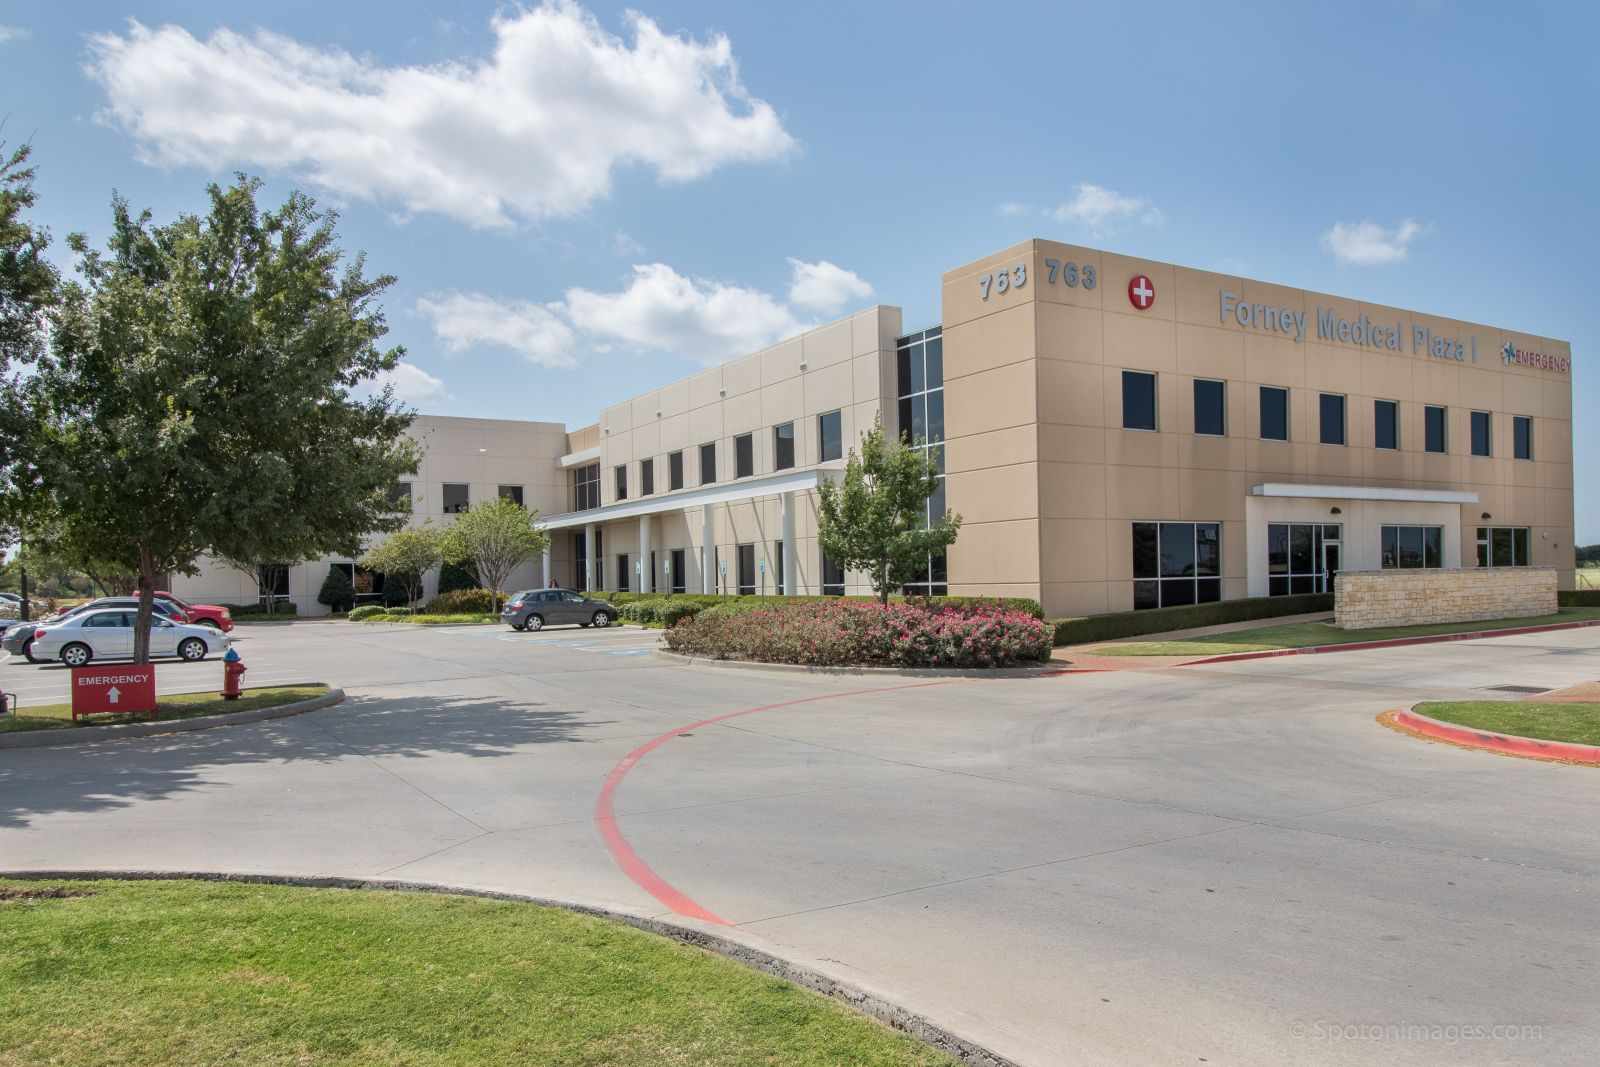 Forney Medical Plaza